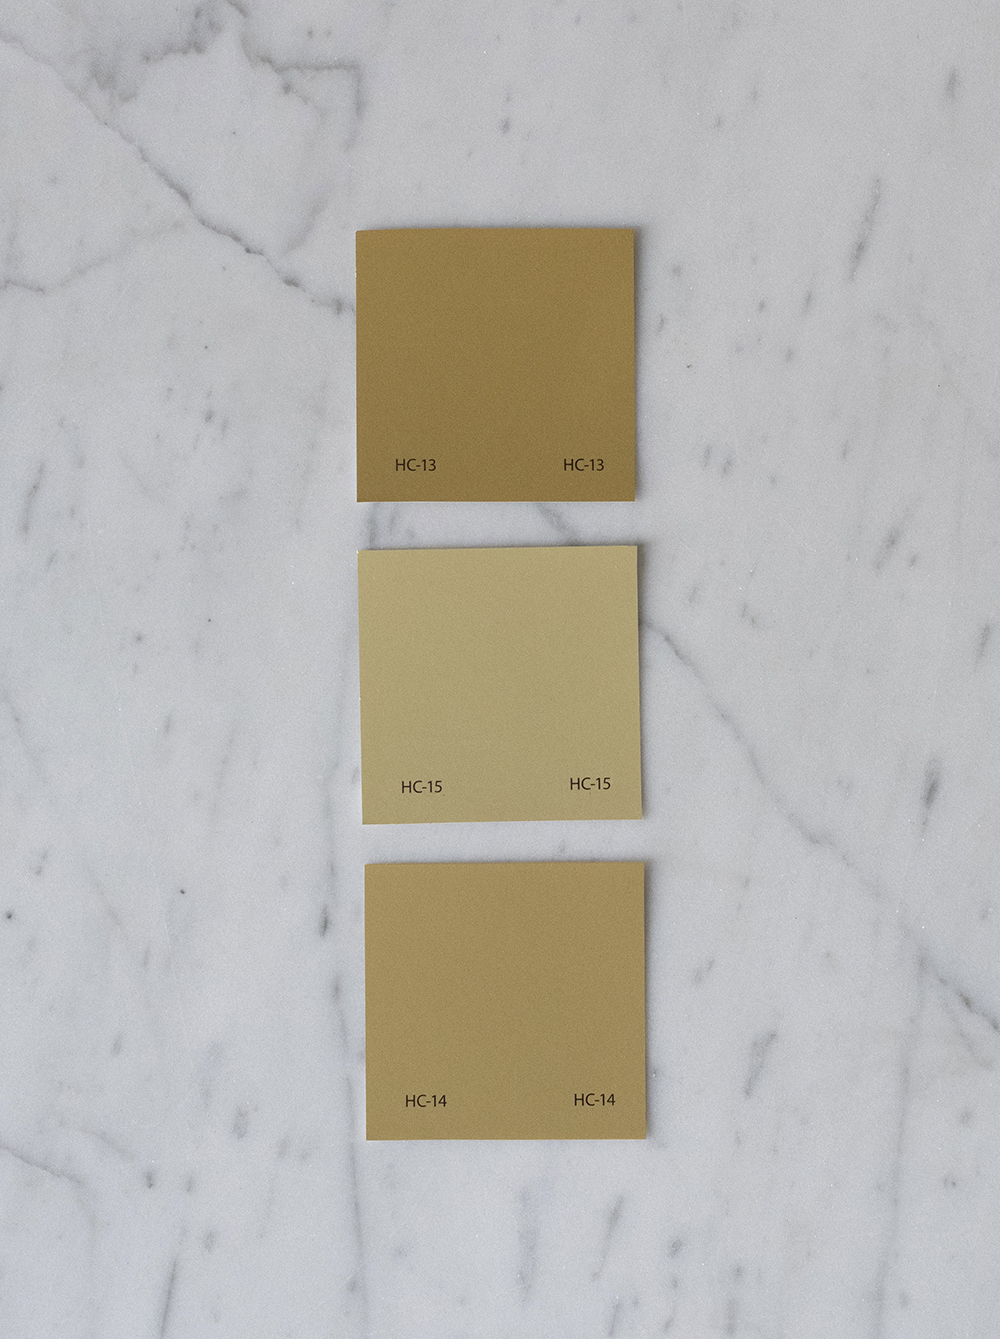 Favorite Benjamin Moore Paint Swatches - roomfortuesday.com